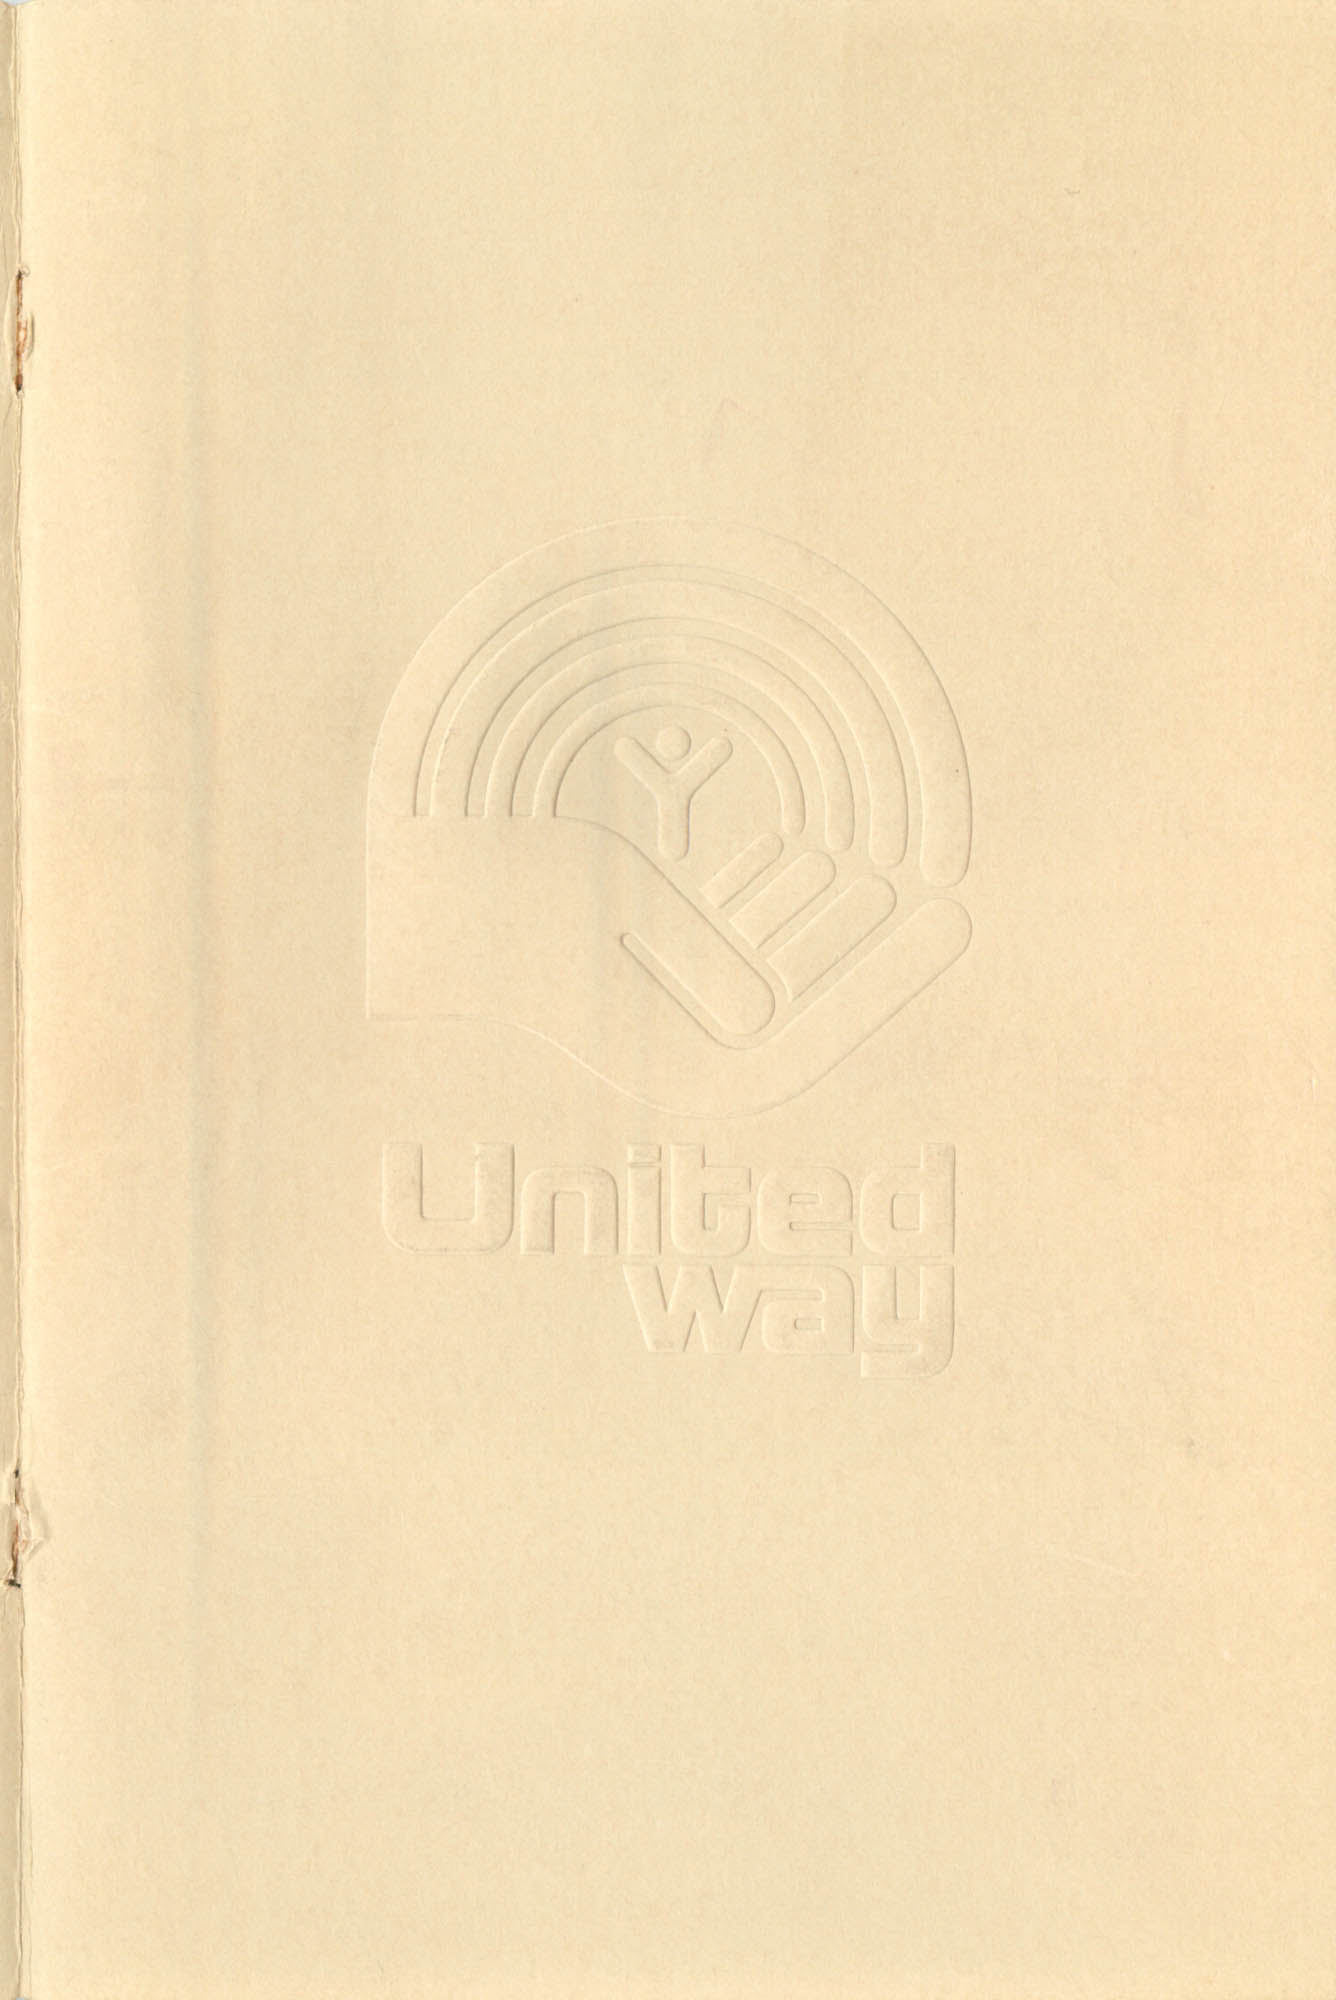 Trident United Way Annual Report, 1980